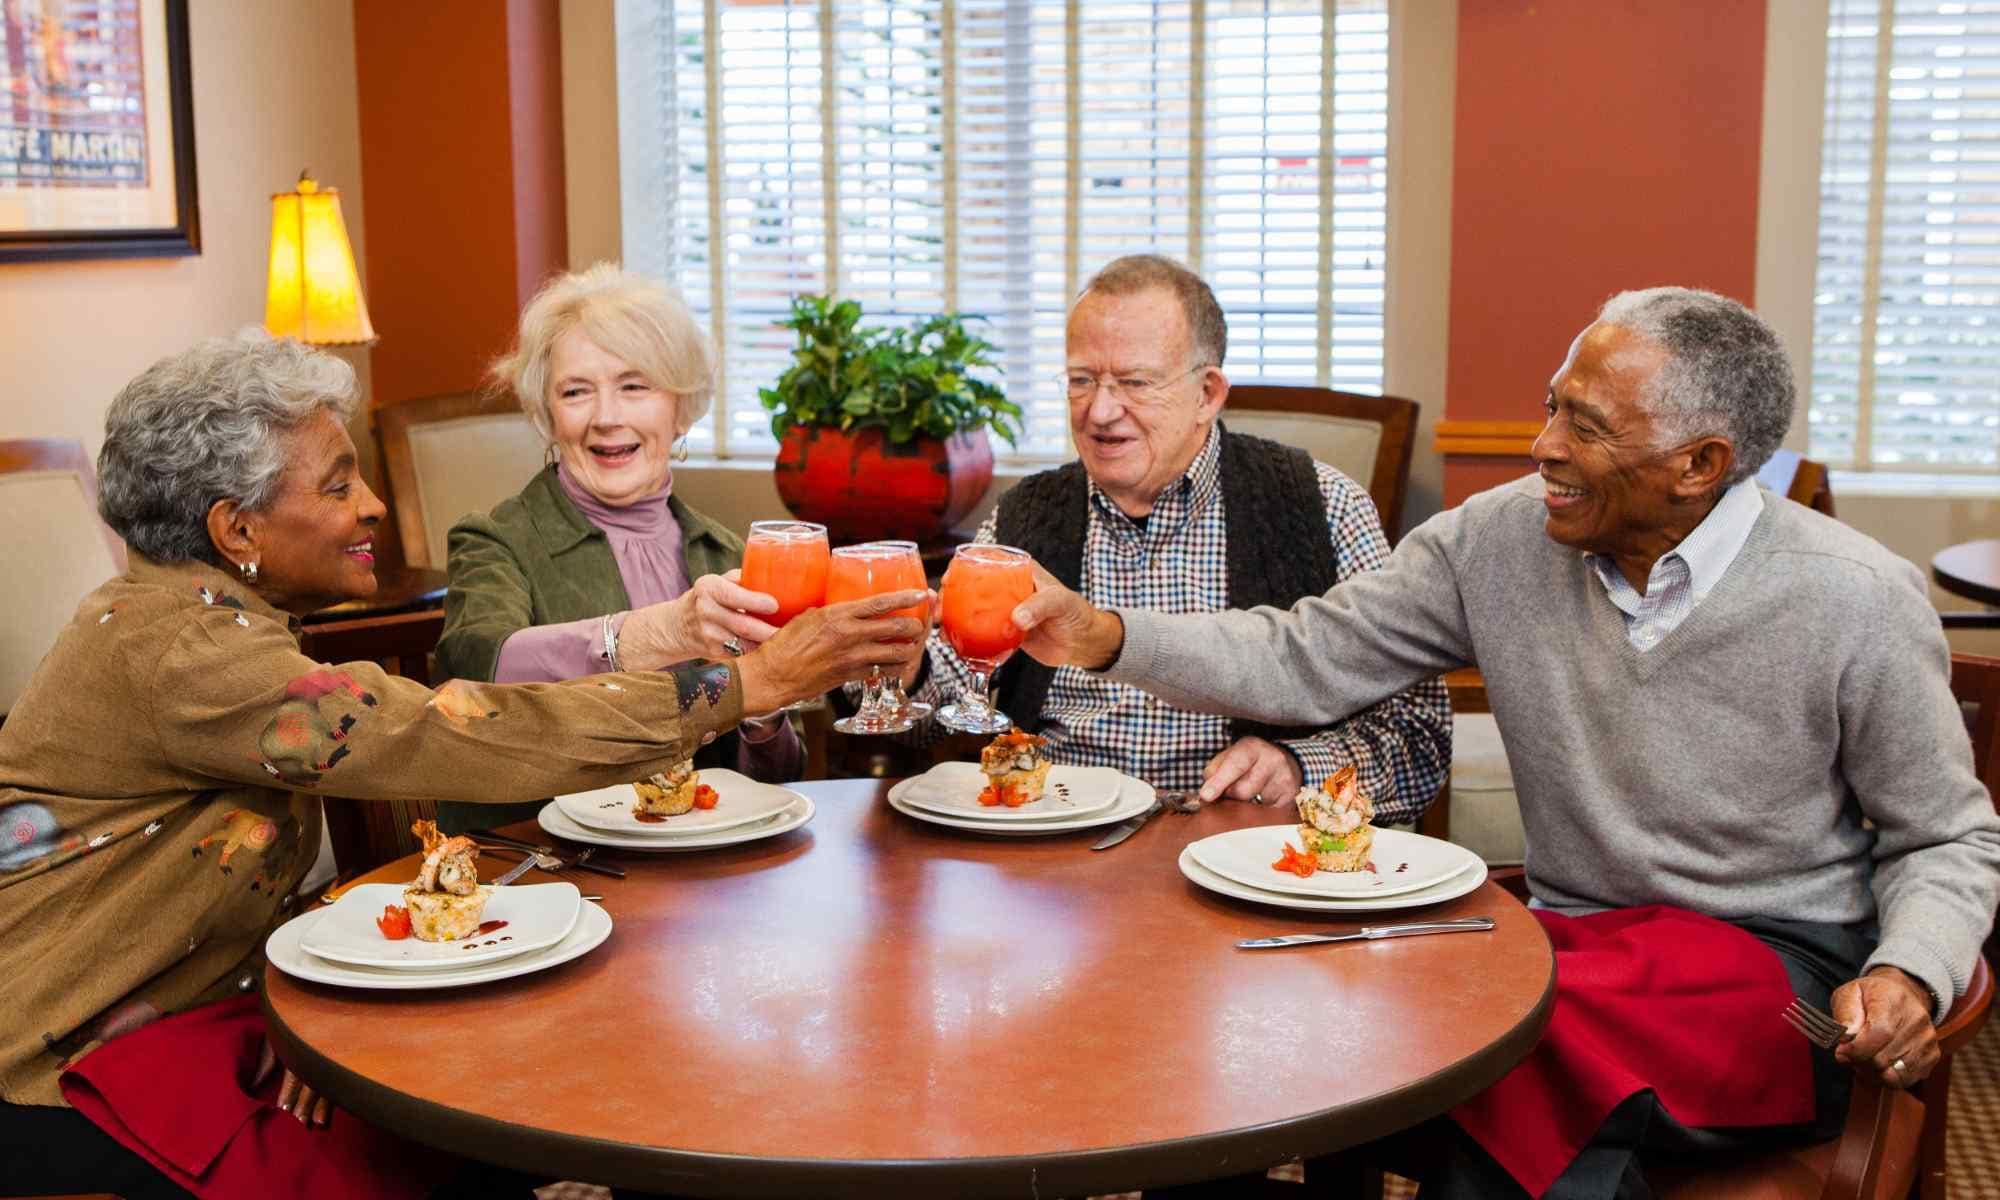 West Centennial Co Senior Living Near Greenwood Village